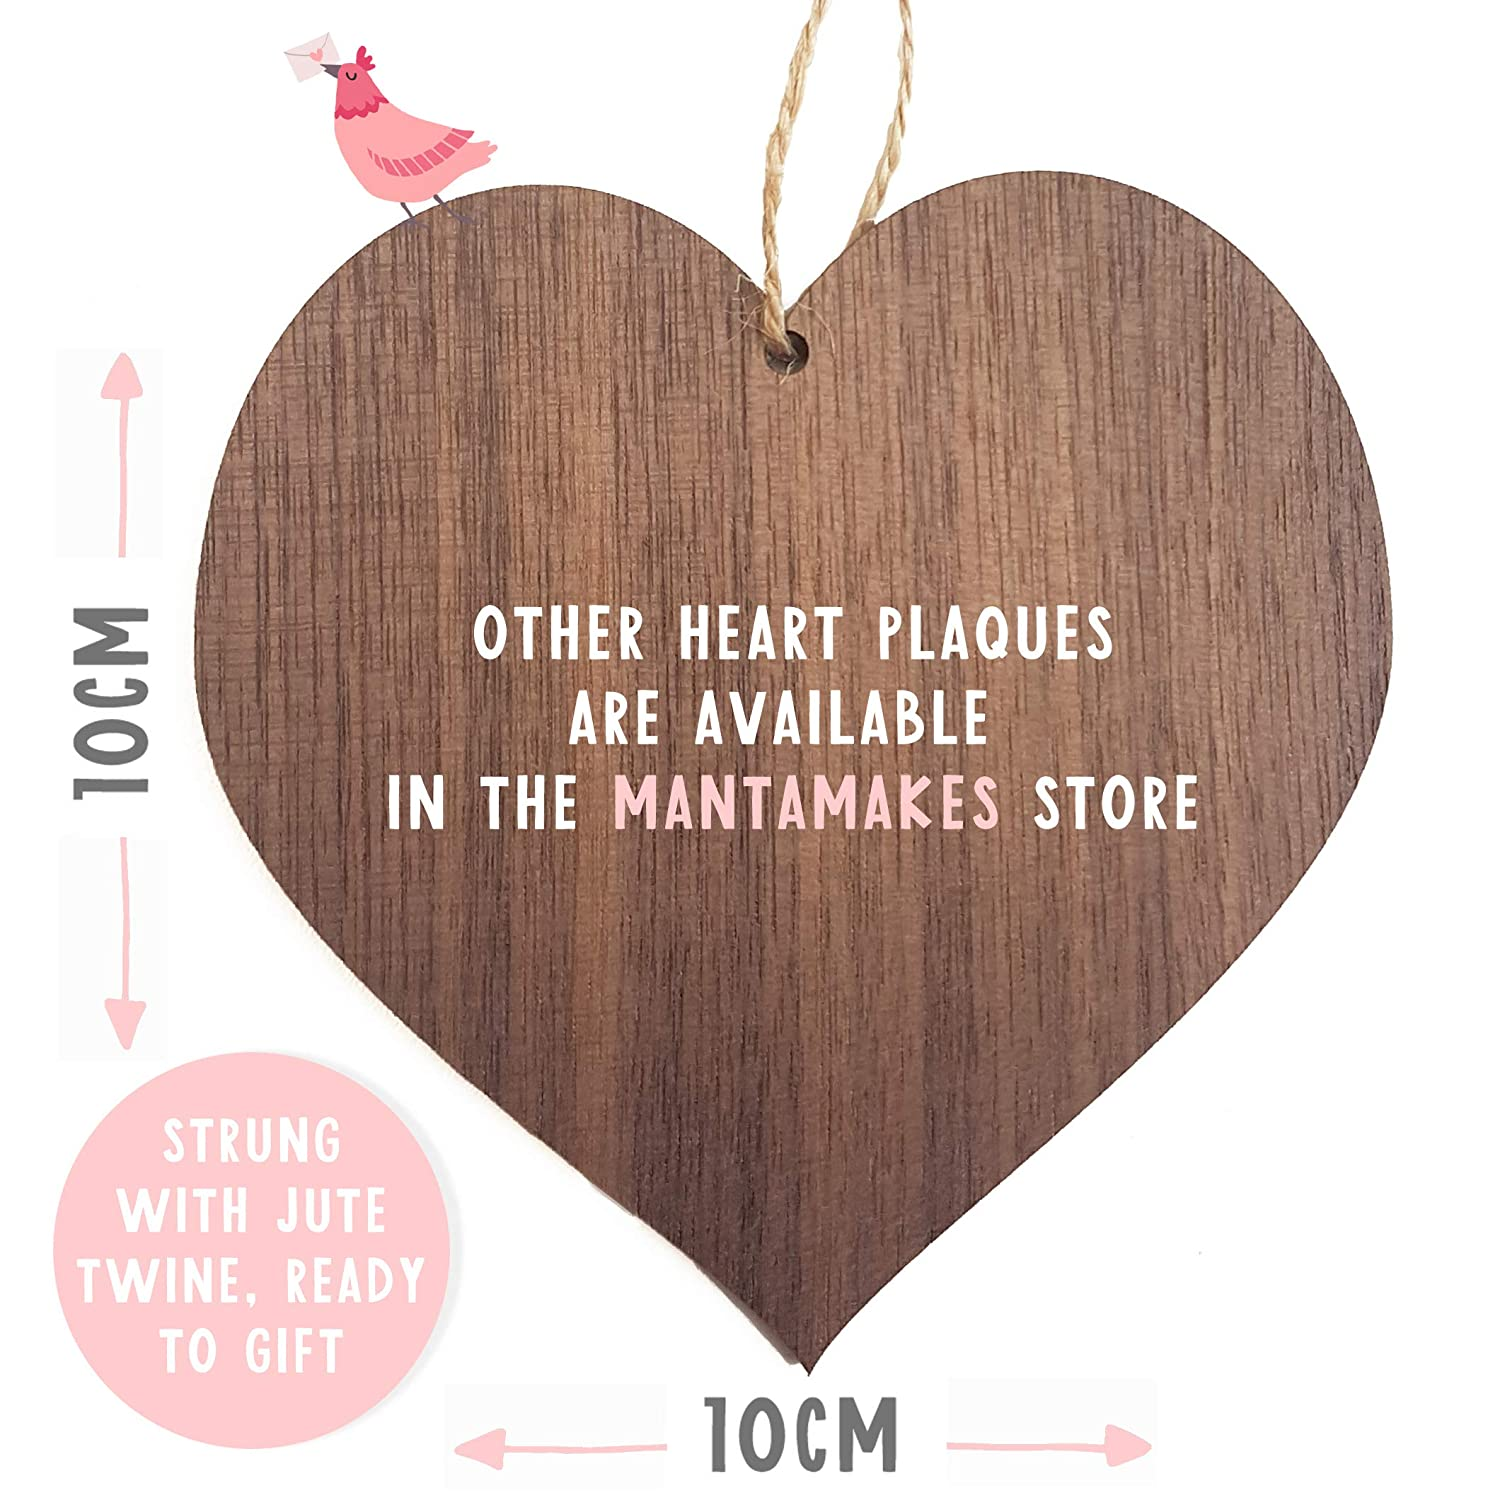 Rainbow bungle and snowman wooden hanging heart plaque sign 10cm